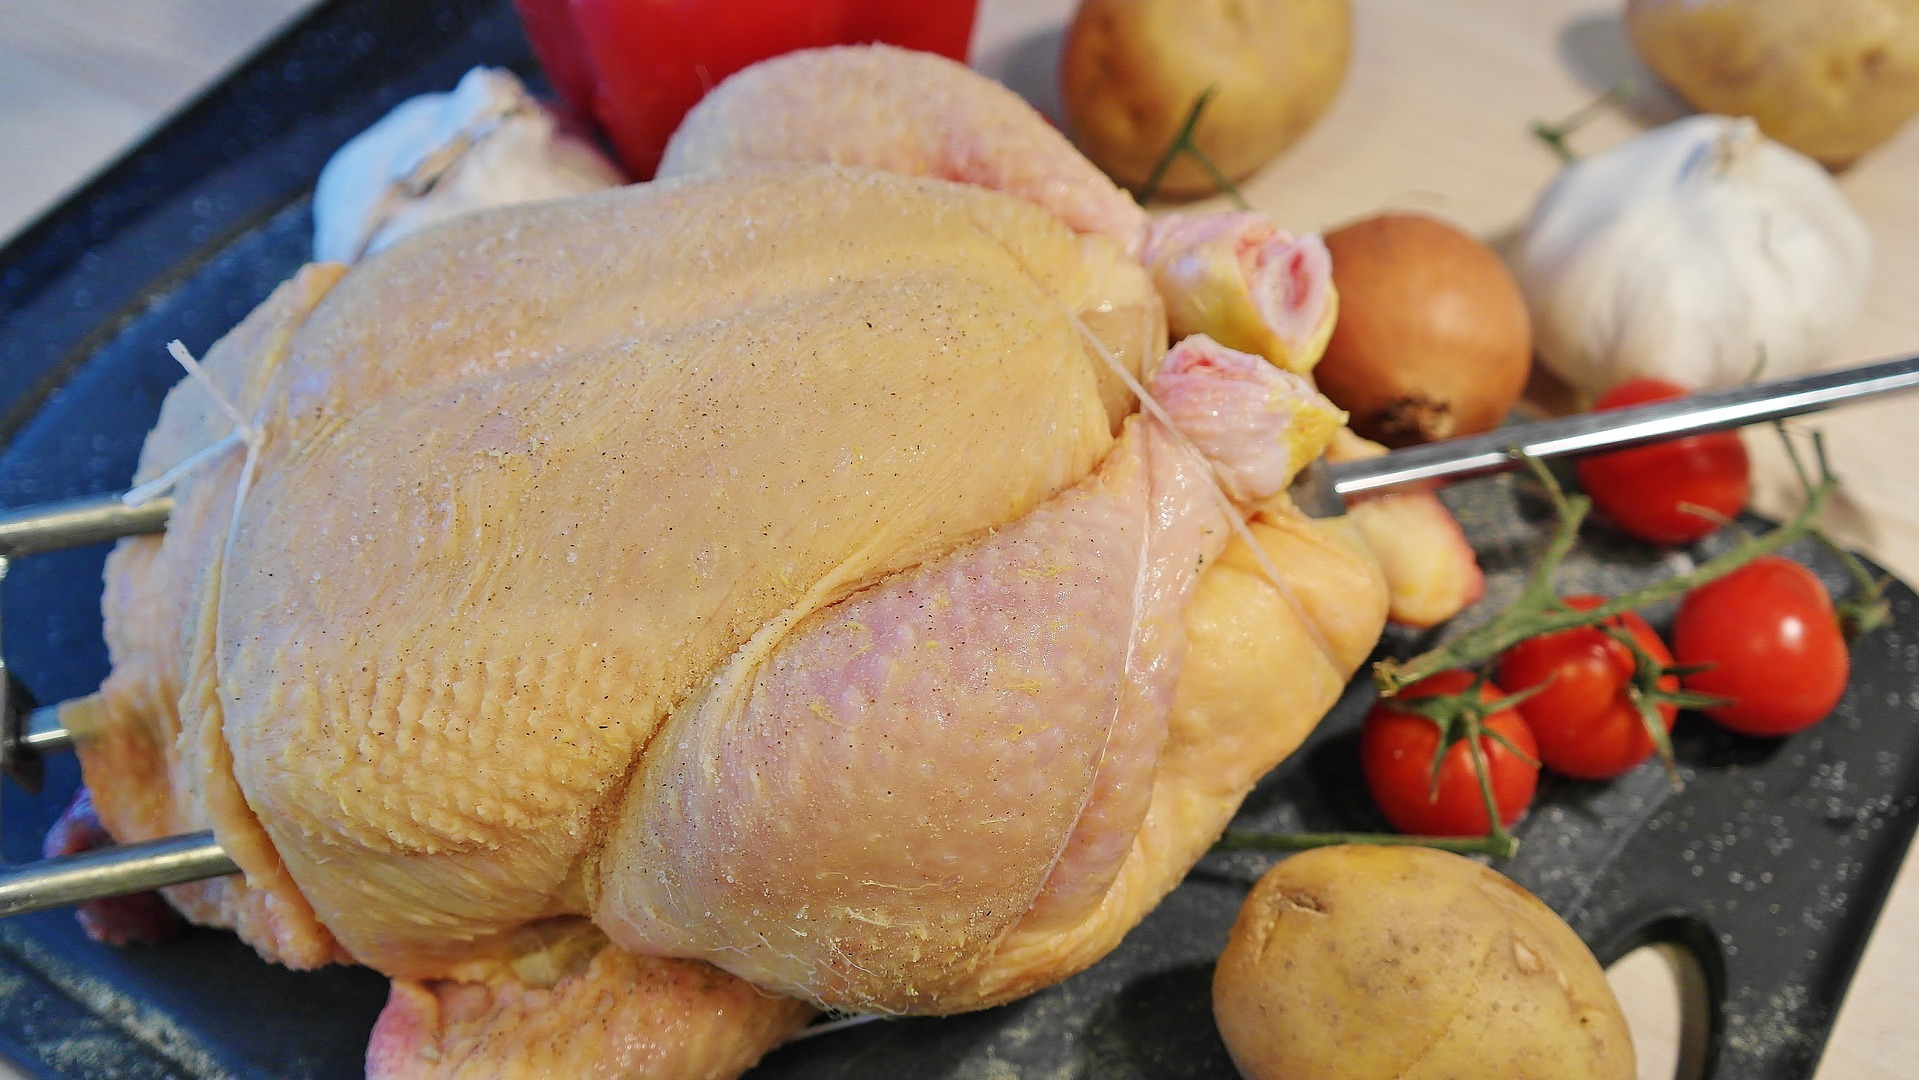 CDC Ends Investigation Into Chicken Salmonella Outbreak That Sickened 129, But More Could Fall Ill